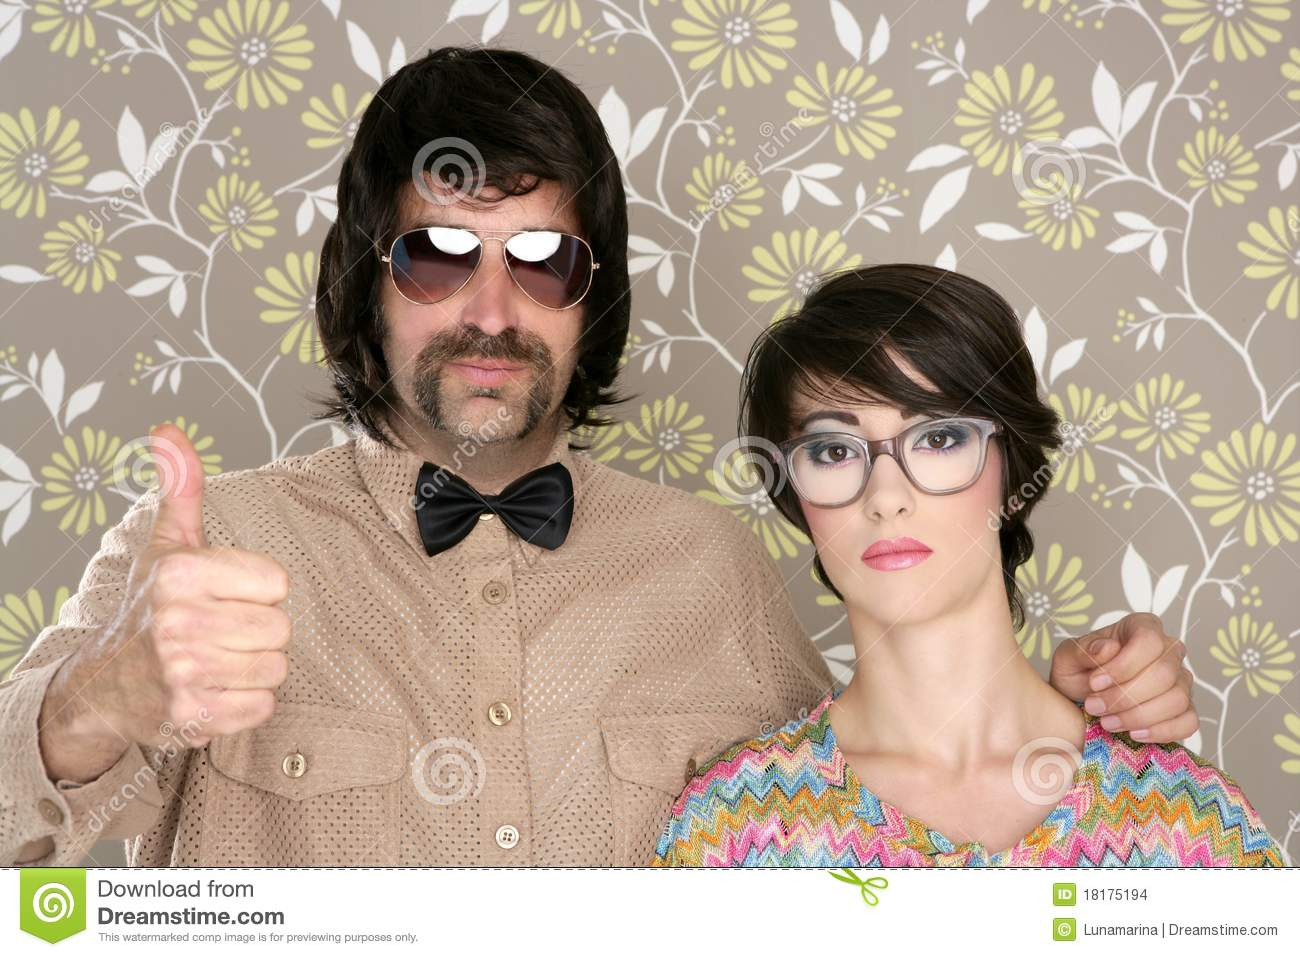 fb0078f22cd0 Nerd Silly Couple Retro Man Woman Ok Hand Sign Stock Photo - Image ...